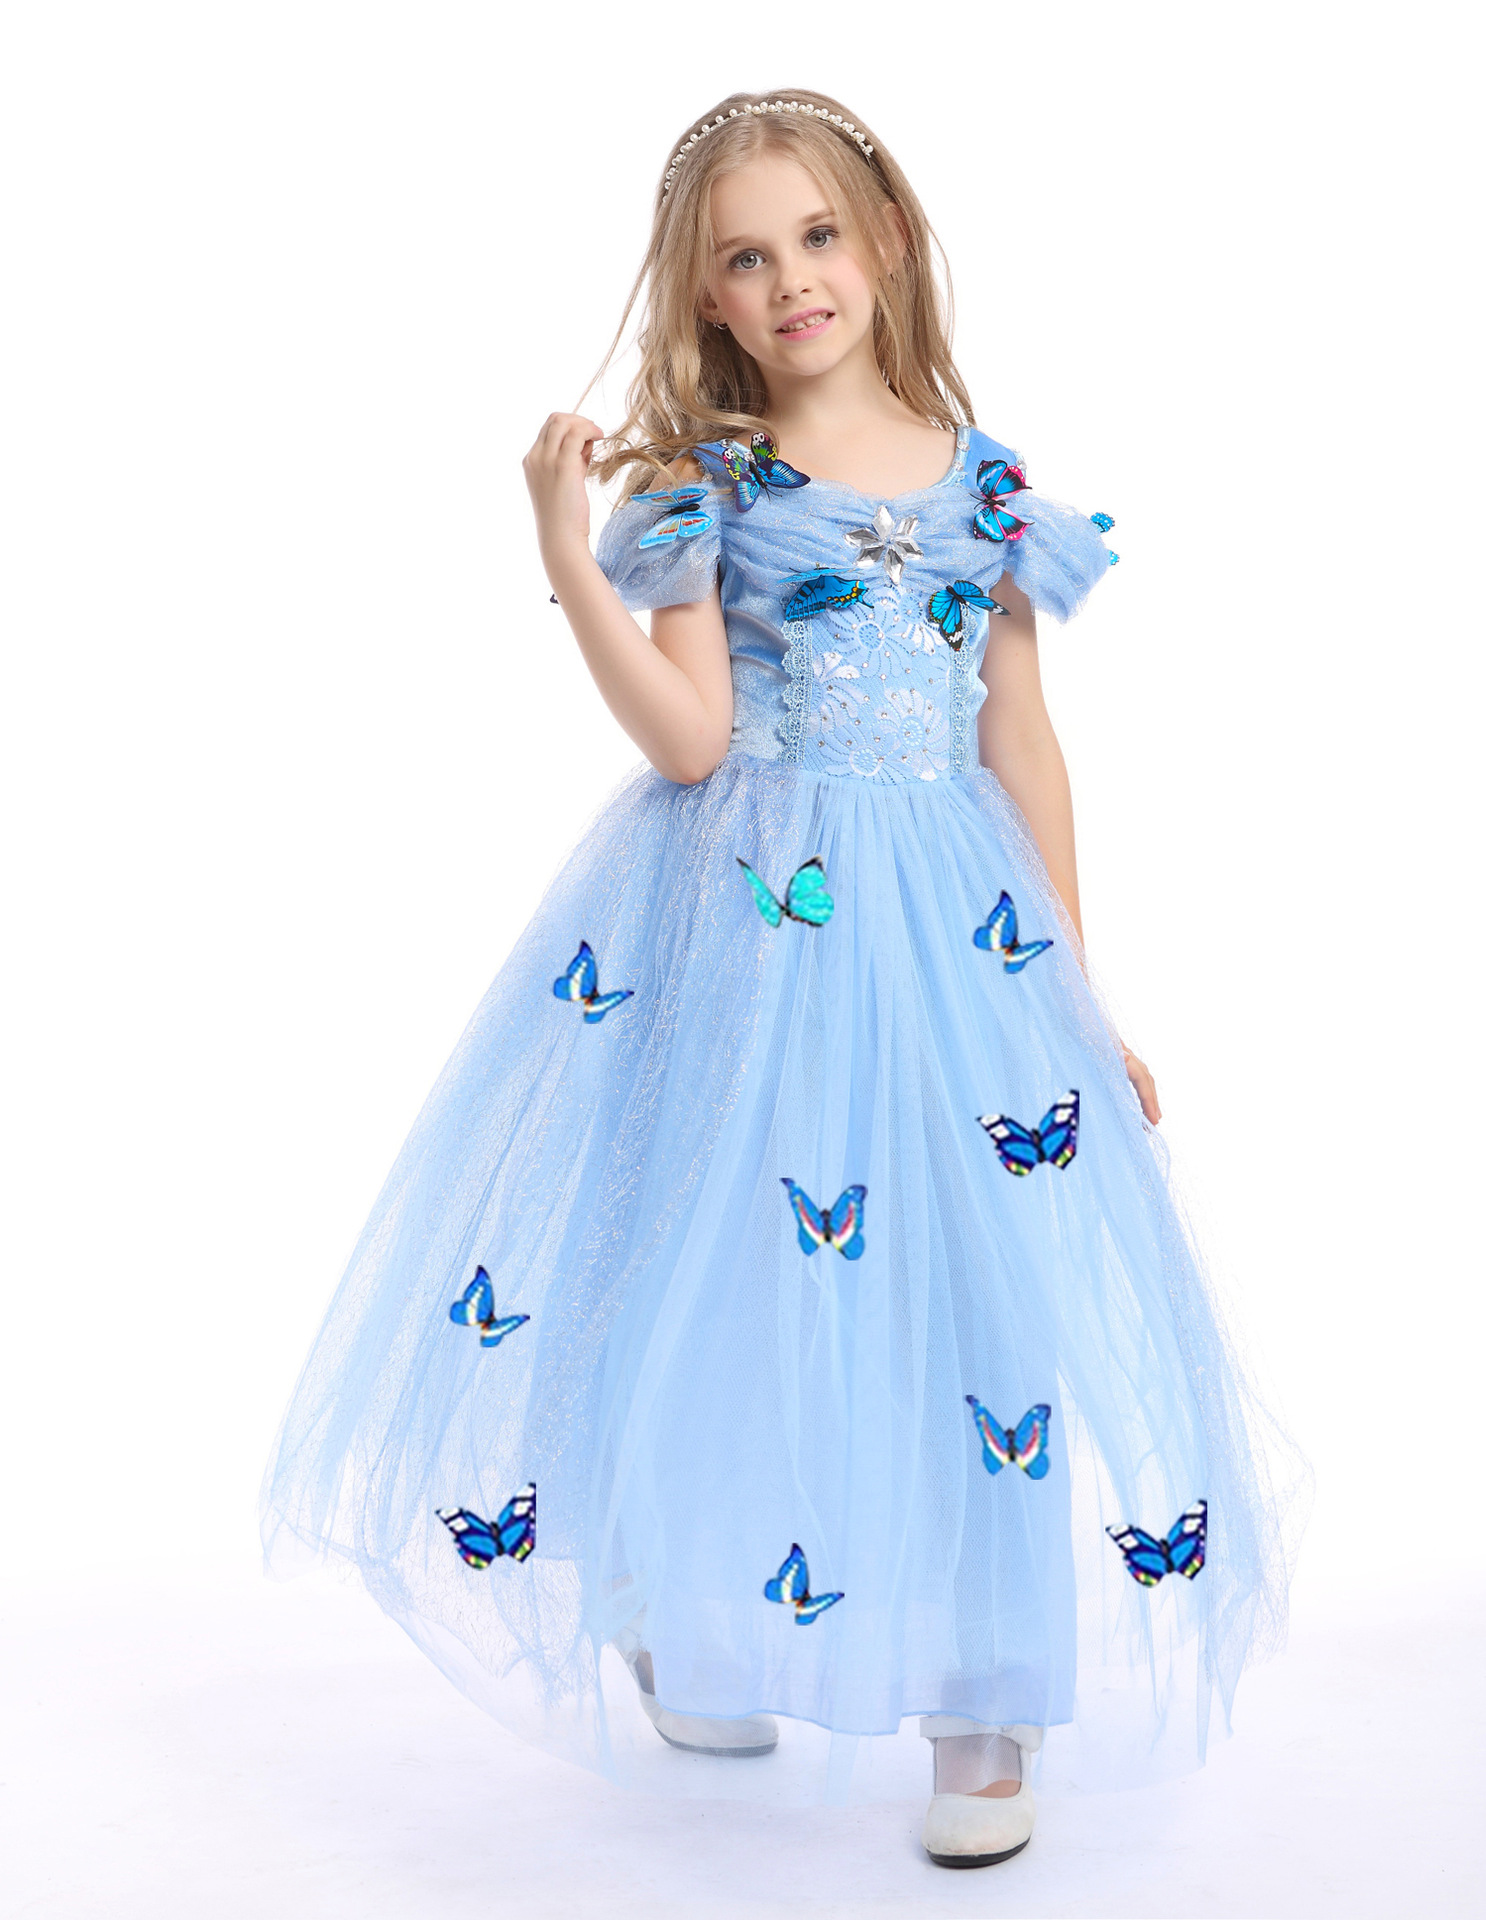 a1979635b7 snowflake diamond dress 2018 fancy costumes for kids blue gown Halloween  baby girl butterfly dress 5 Layers Girls clothes in stock